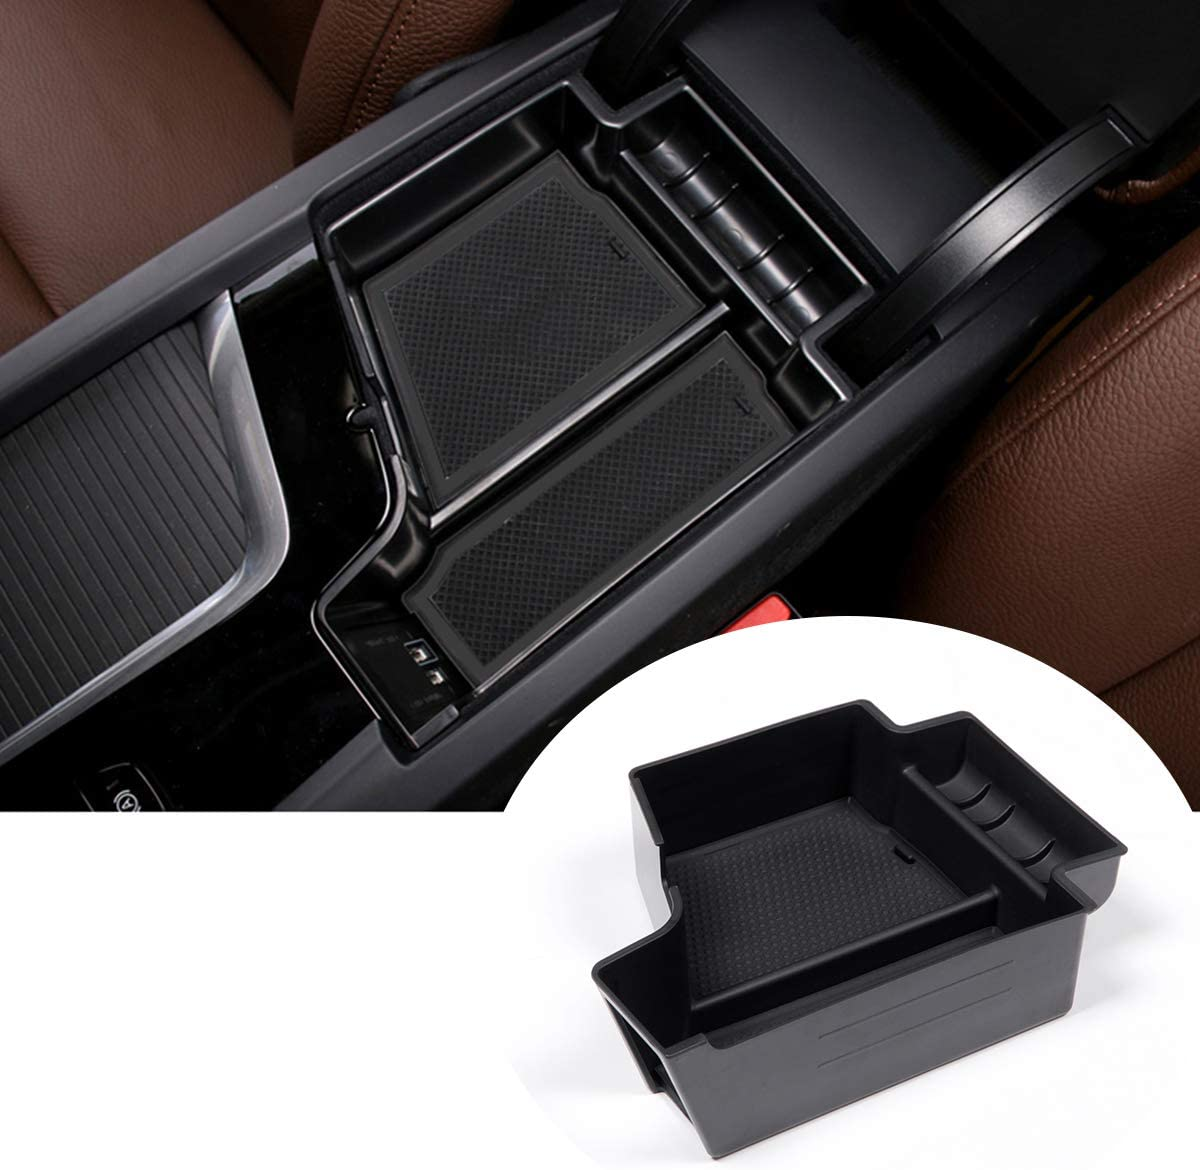 Black Center Storage Box Car Container Holder Tray Armrests For S90 XC90 V90 XC60 2017 2018